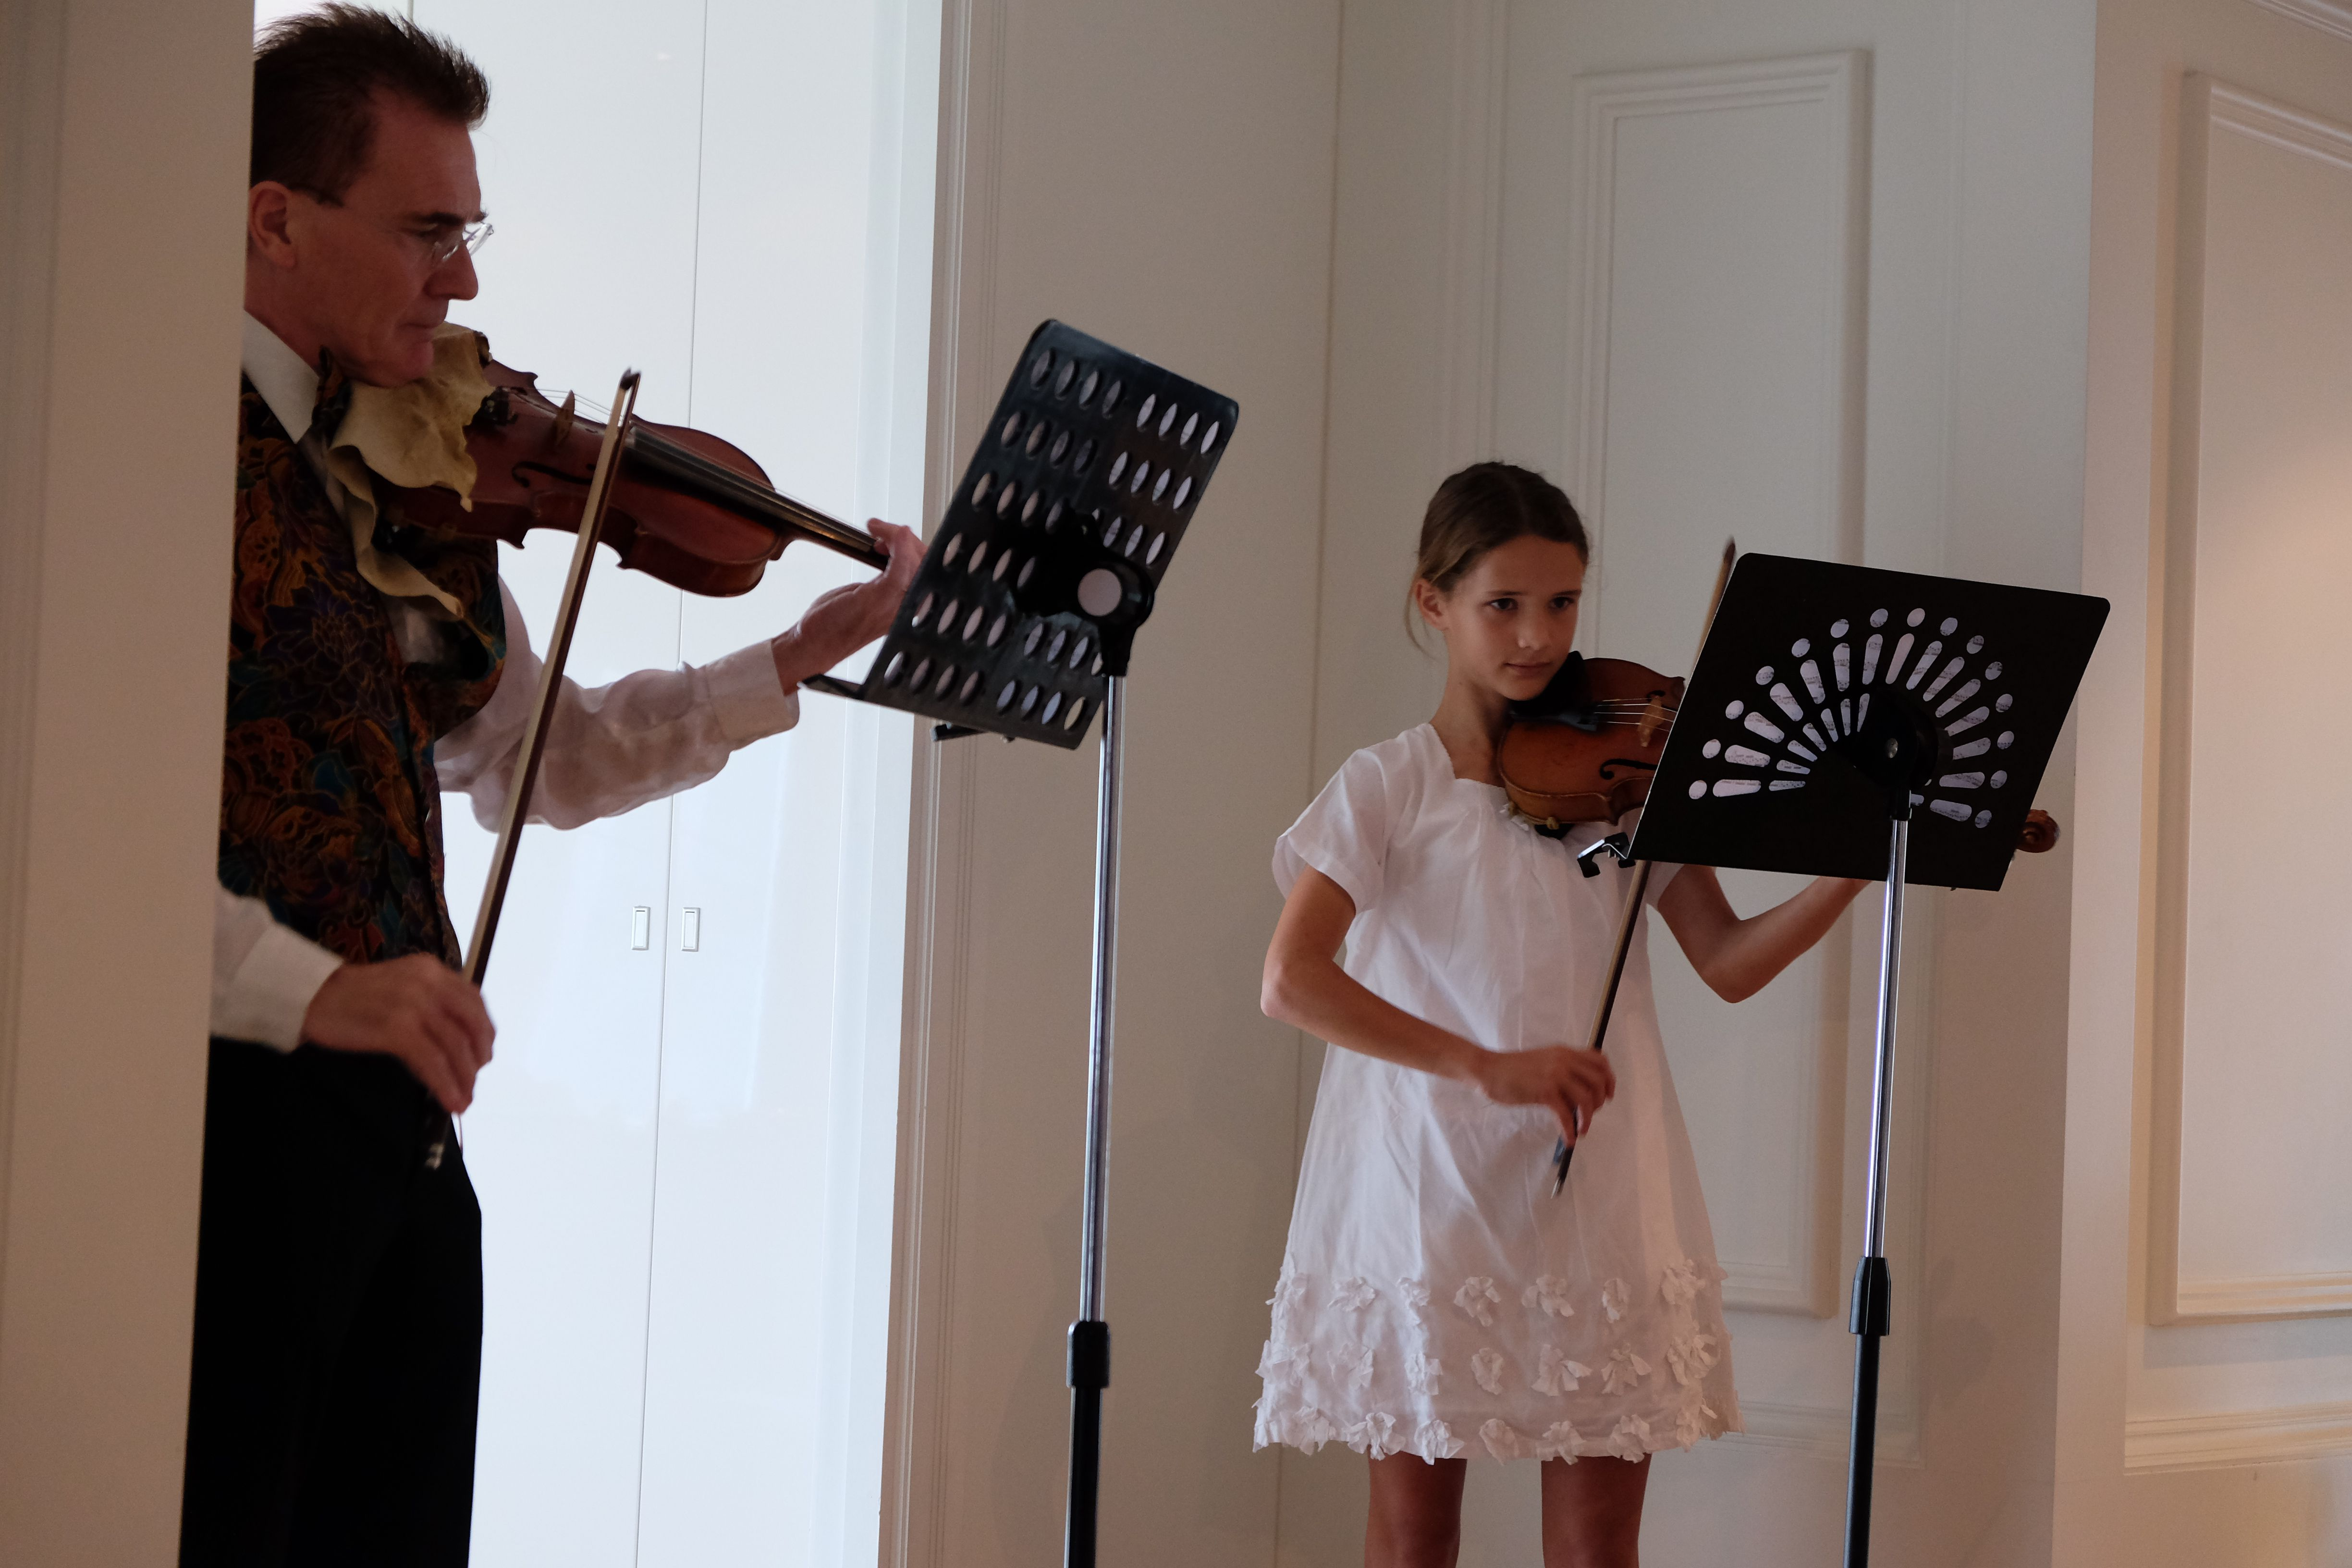 Duet with an advanced student from France who has been playing the violin for 5 years.